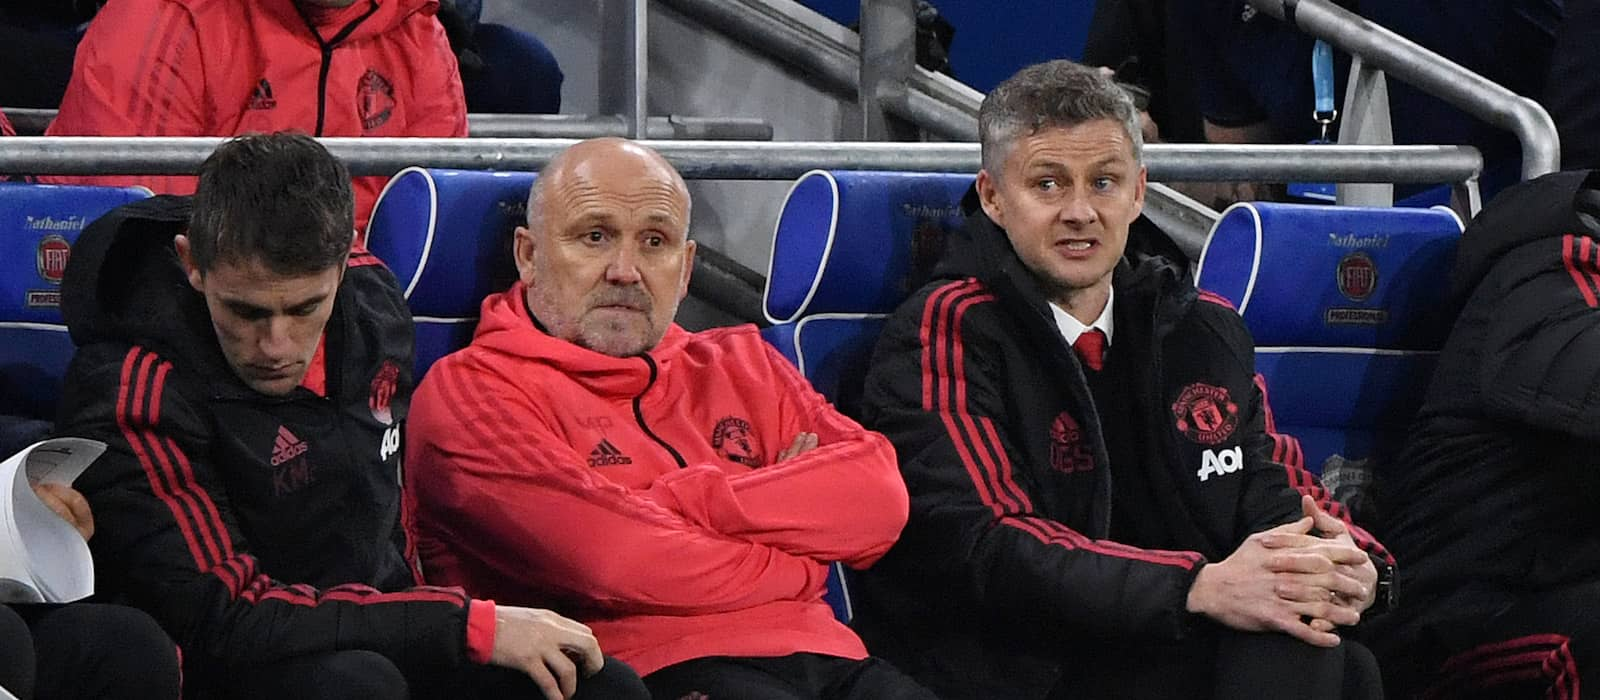 Mike Phelan: We tried to bring the old Manchester United back